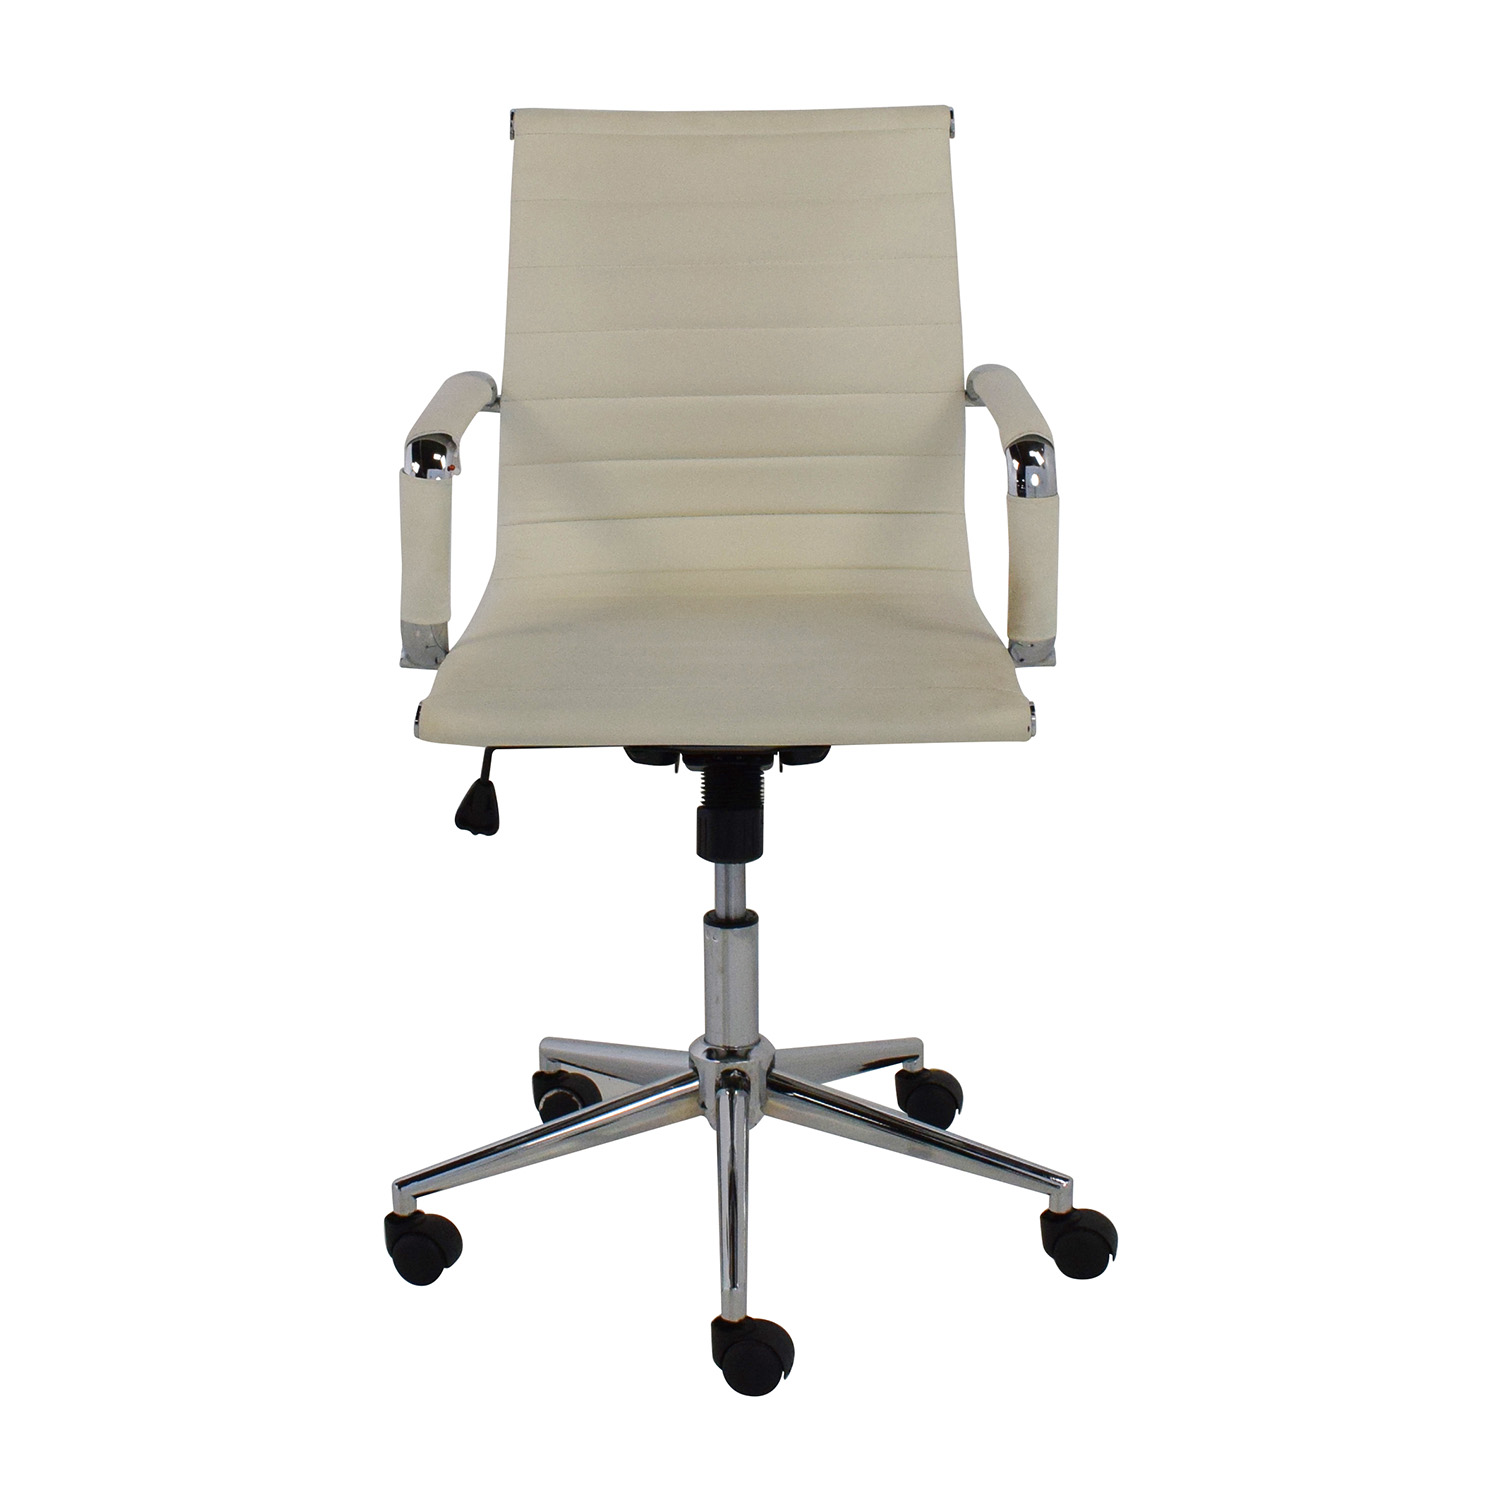 shop 2xhome 2Xhome Modern Mid Back White Faux Leather Office Chair online